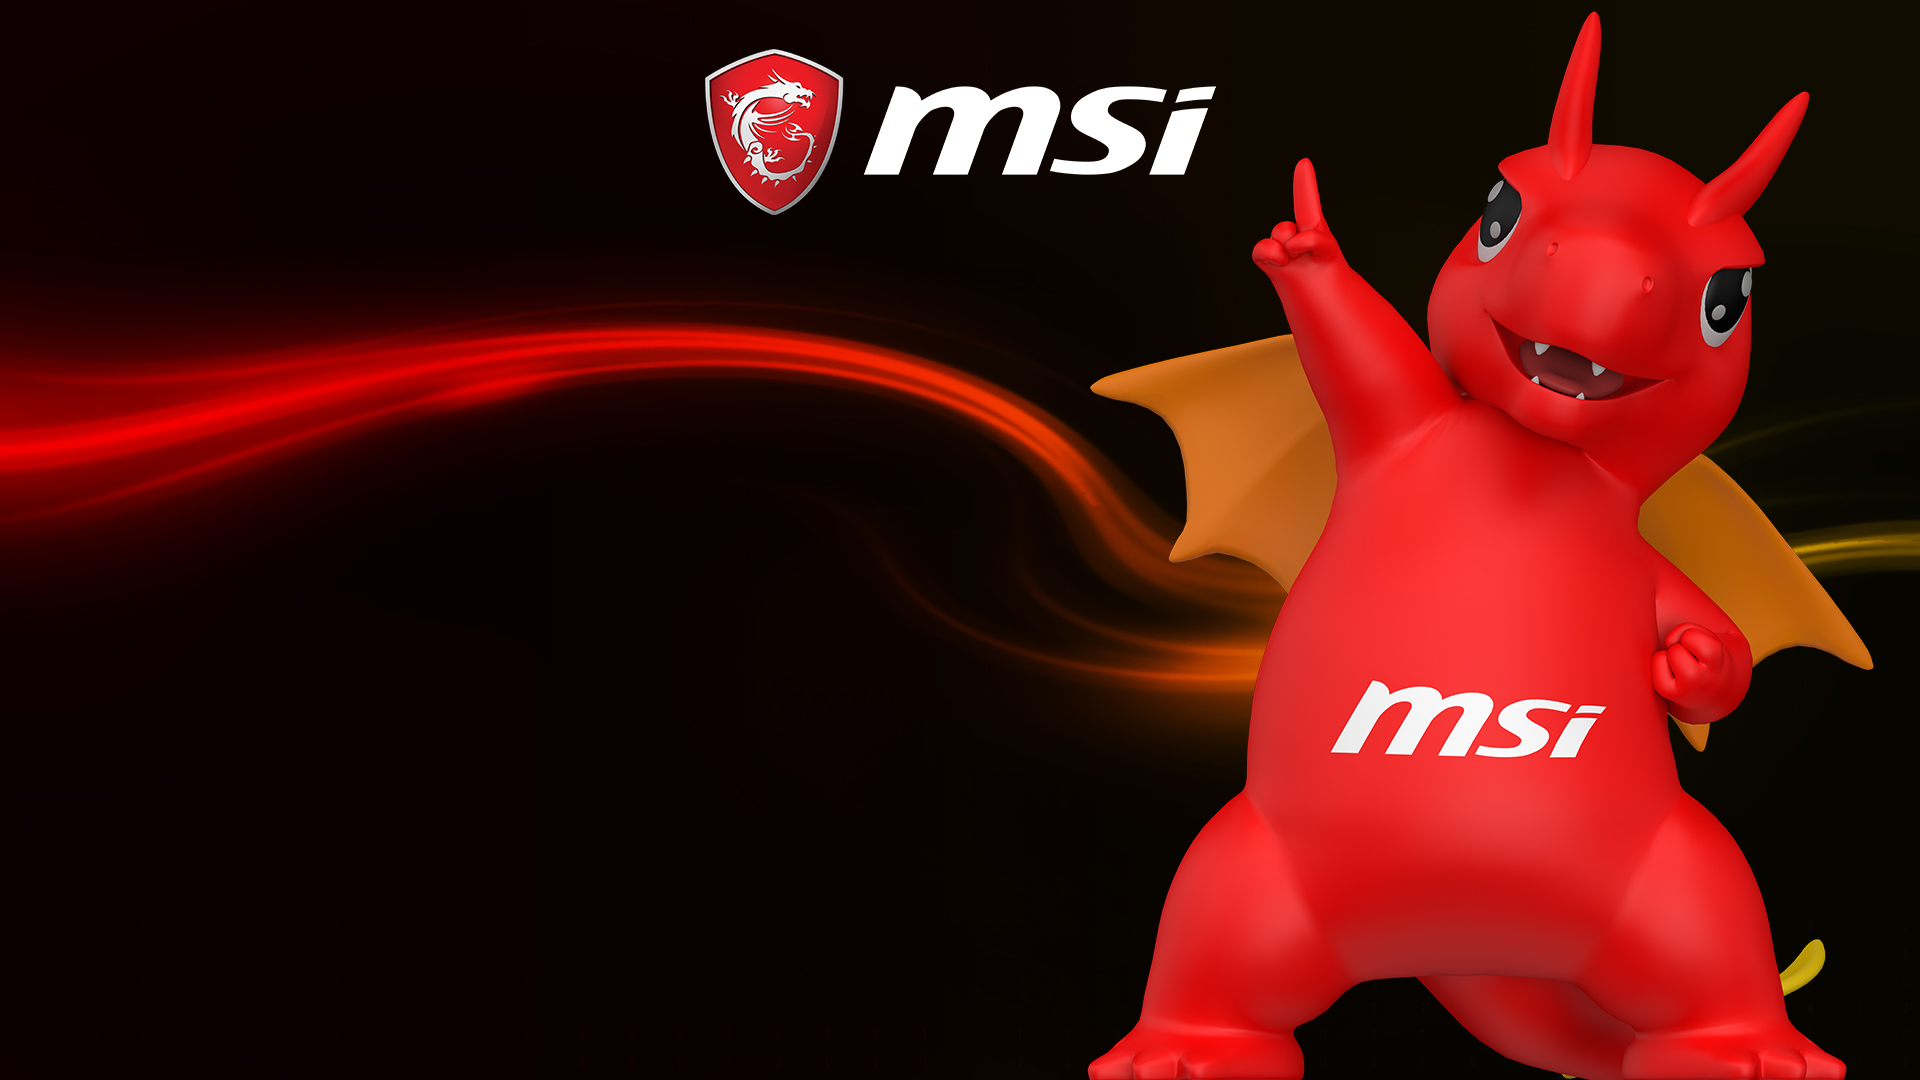 10 New Msi Gaming Series Wallpaper Full Hd 1920 1080 For: MSI Global